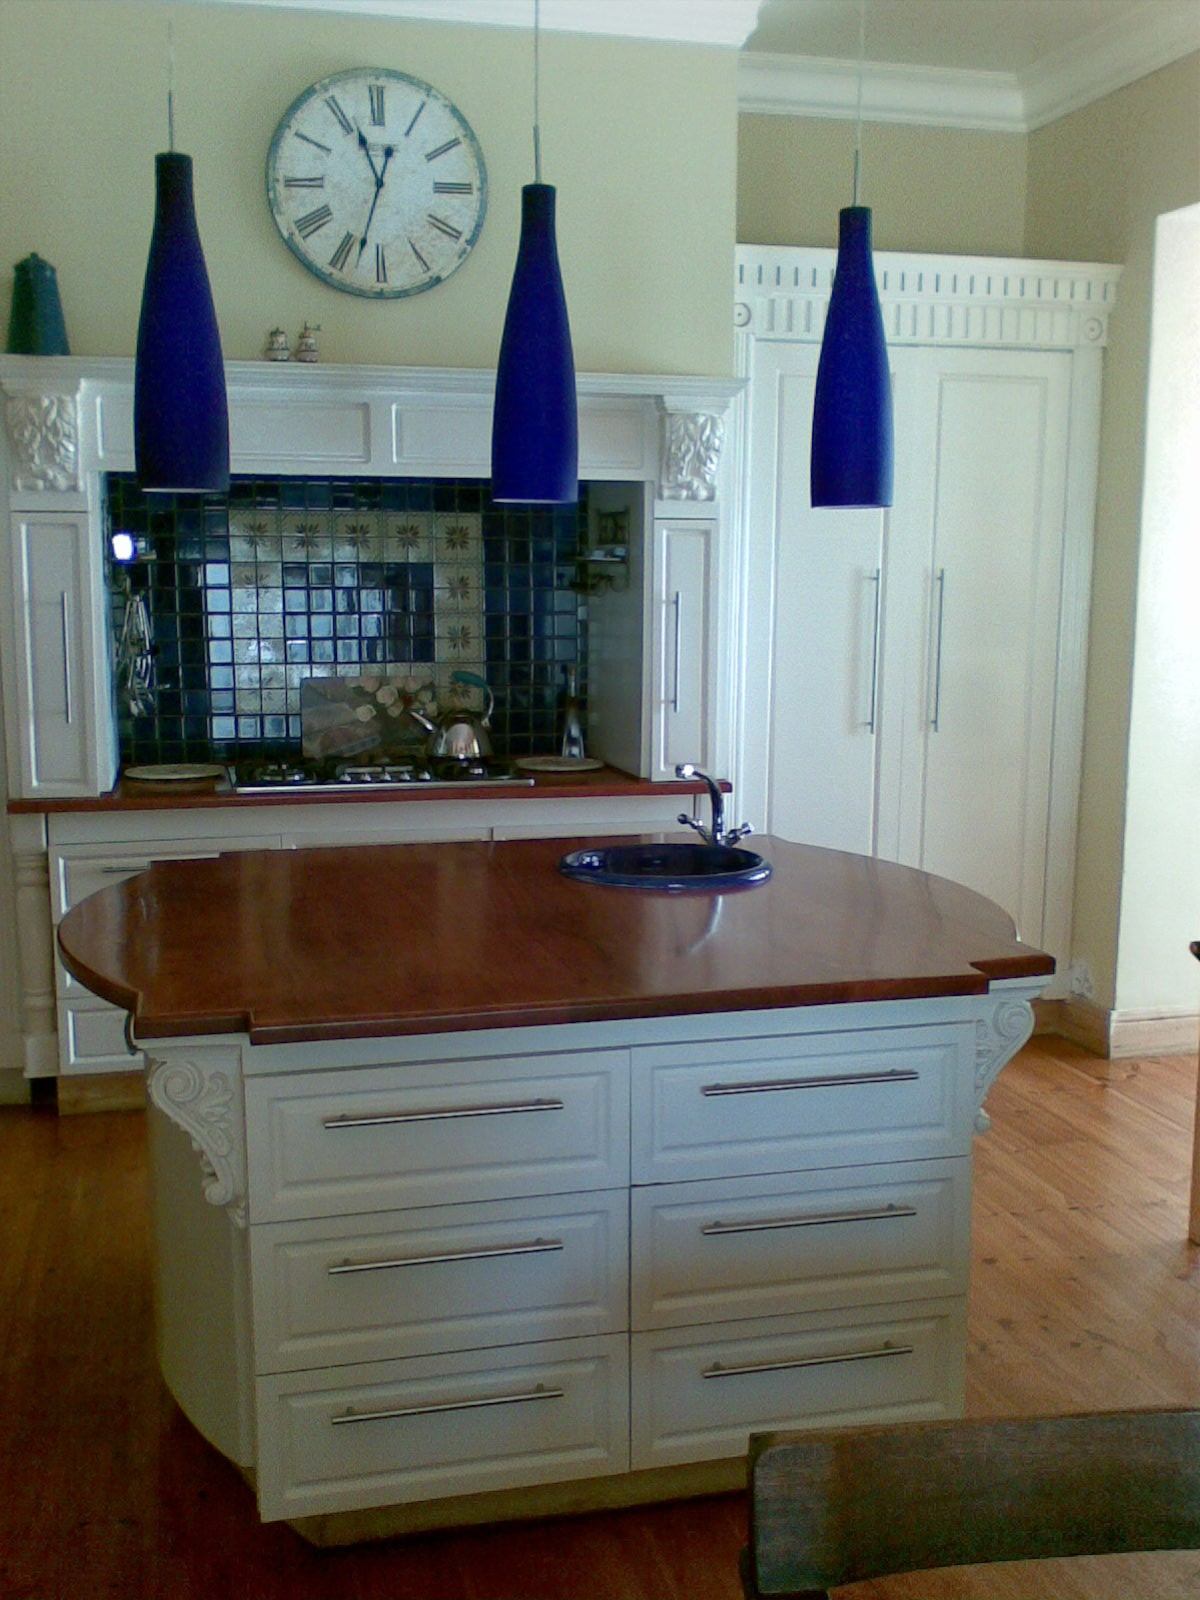 4 BedroomHouse For Sale In Frankfort